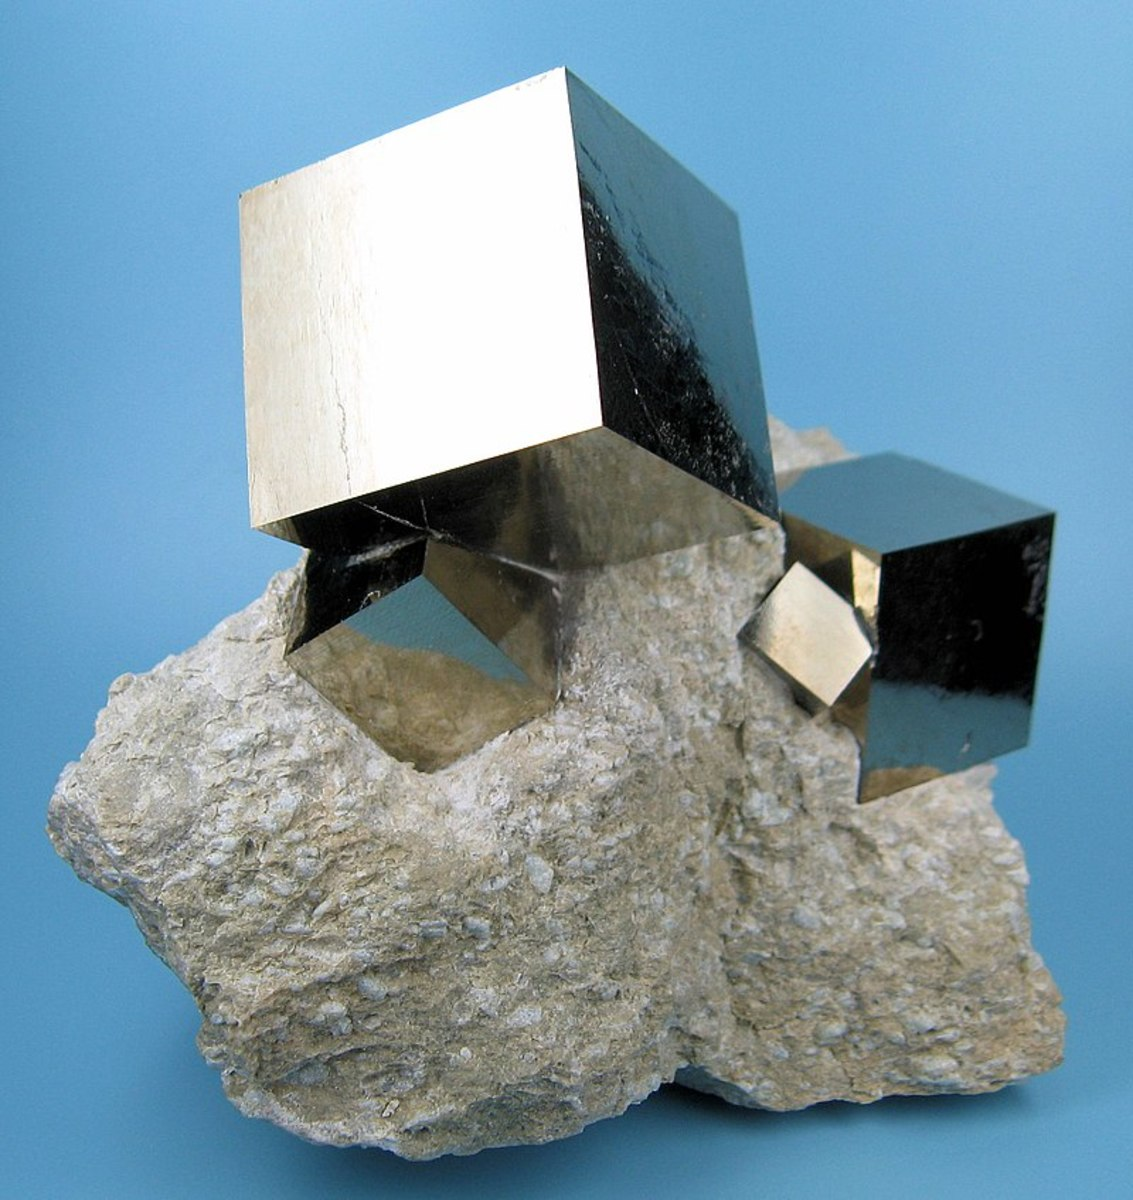 All that glitters is not gold - Iron Pyrite, better known as Fools Gold